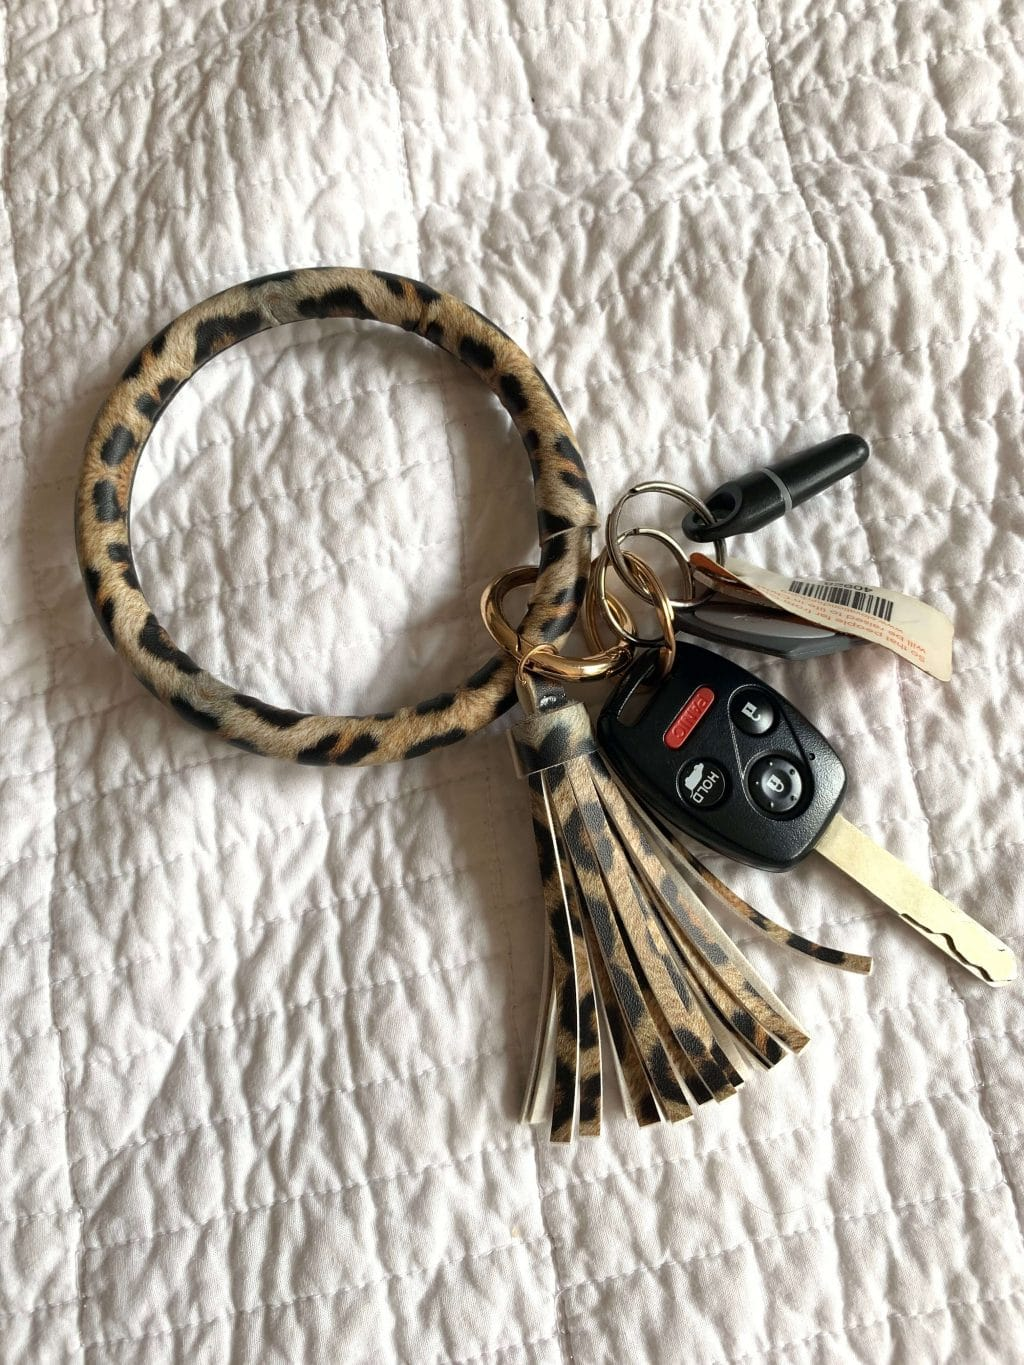 Amazon Finds, Amazon Style, Stilettos and Diapers, Molly Wey, O ring, leopard tassel key ring